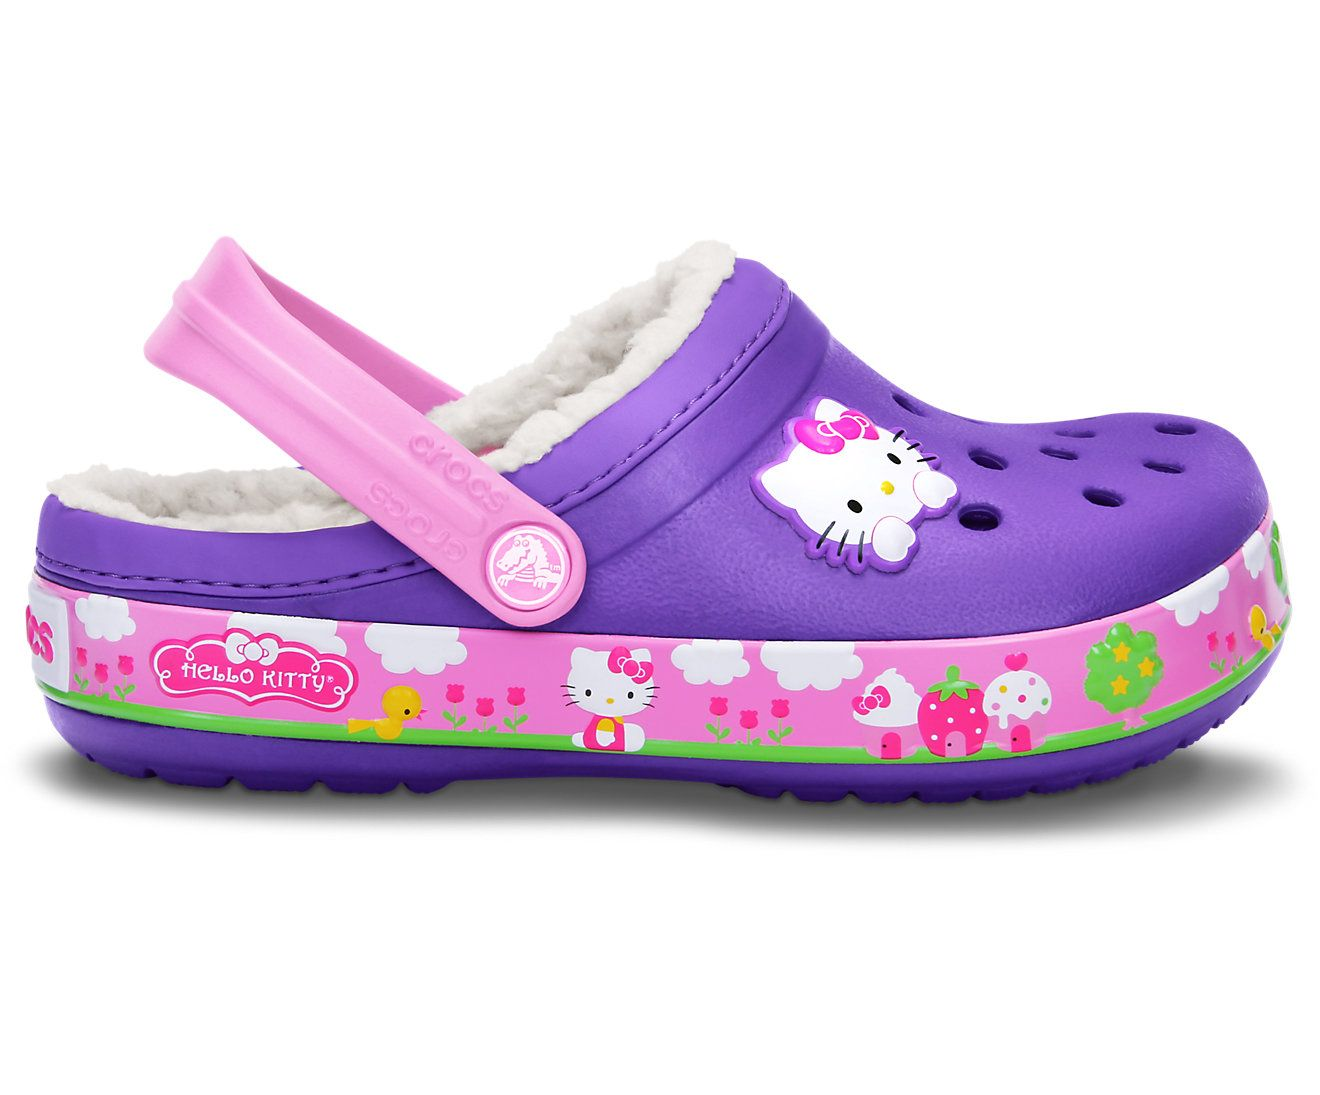 69a0b7211 How cute are these for little girls?? Crocband™ Hello Kitty® Fair Lined Clog  from @Crocs Shoes